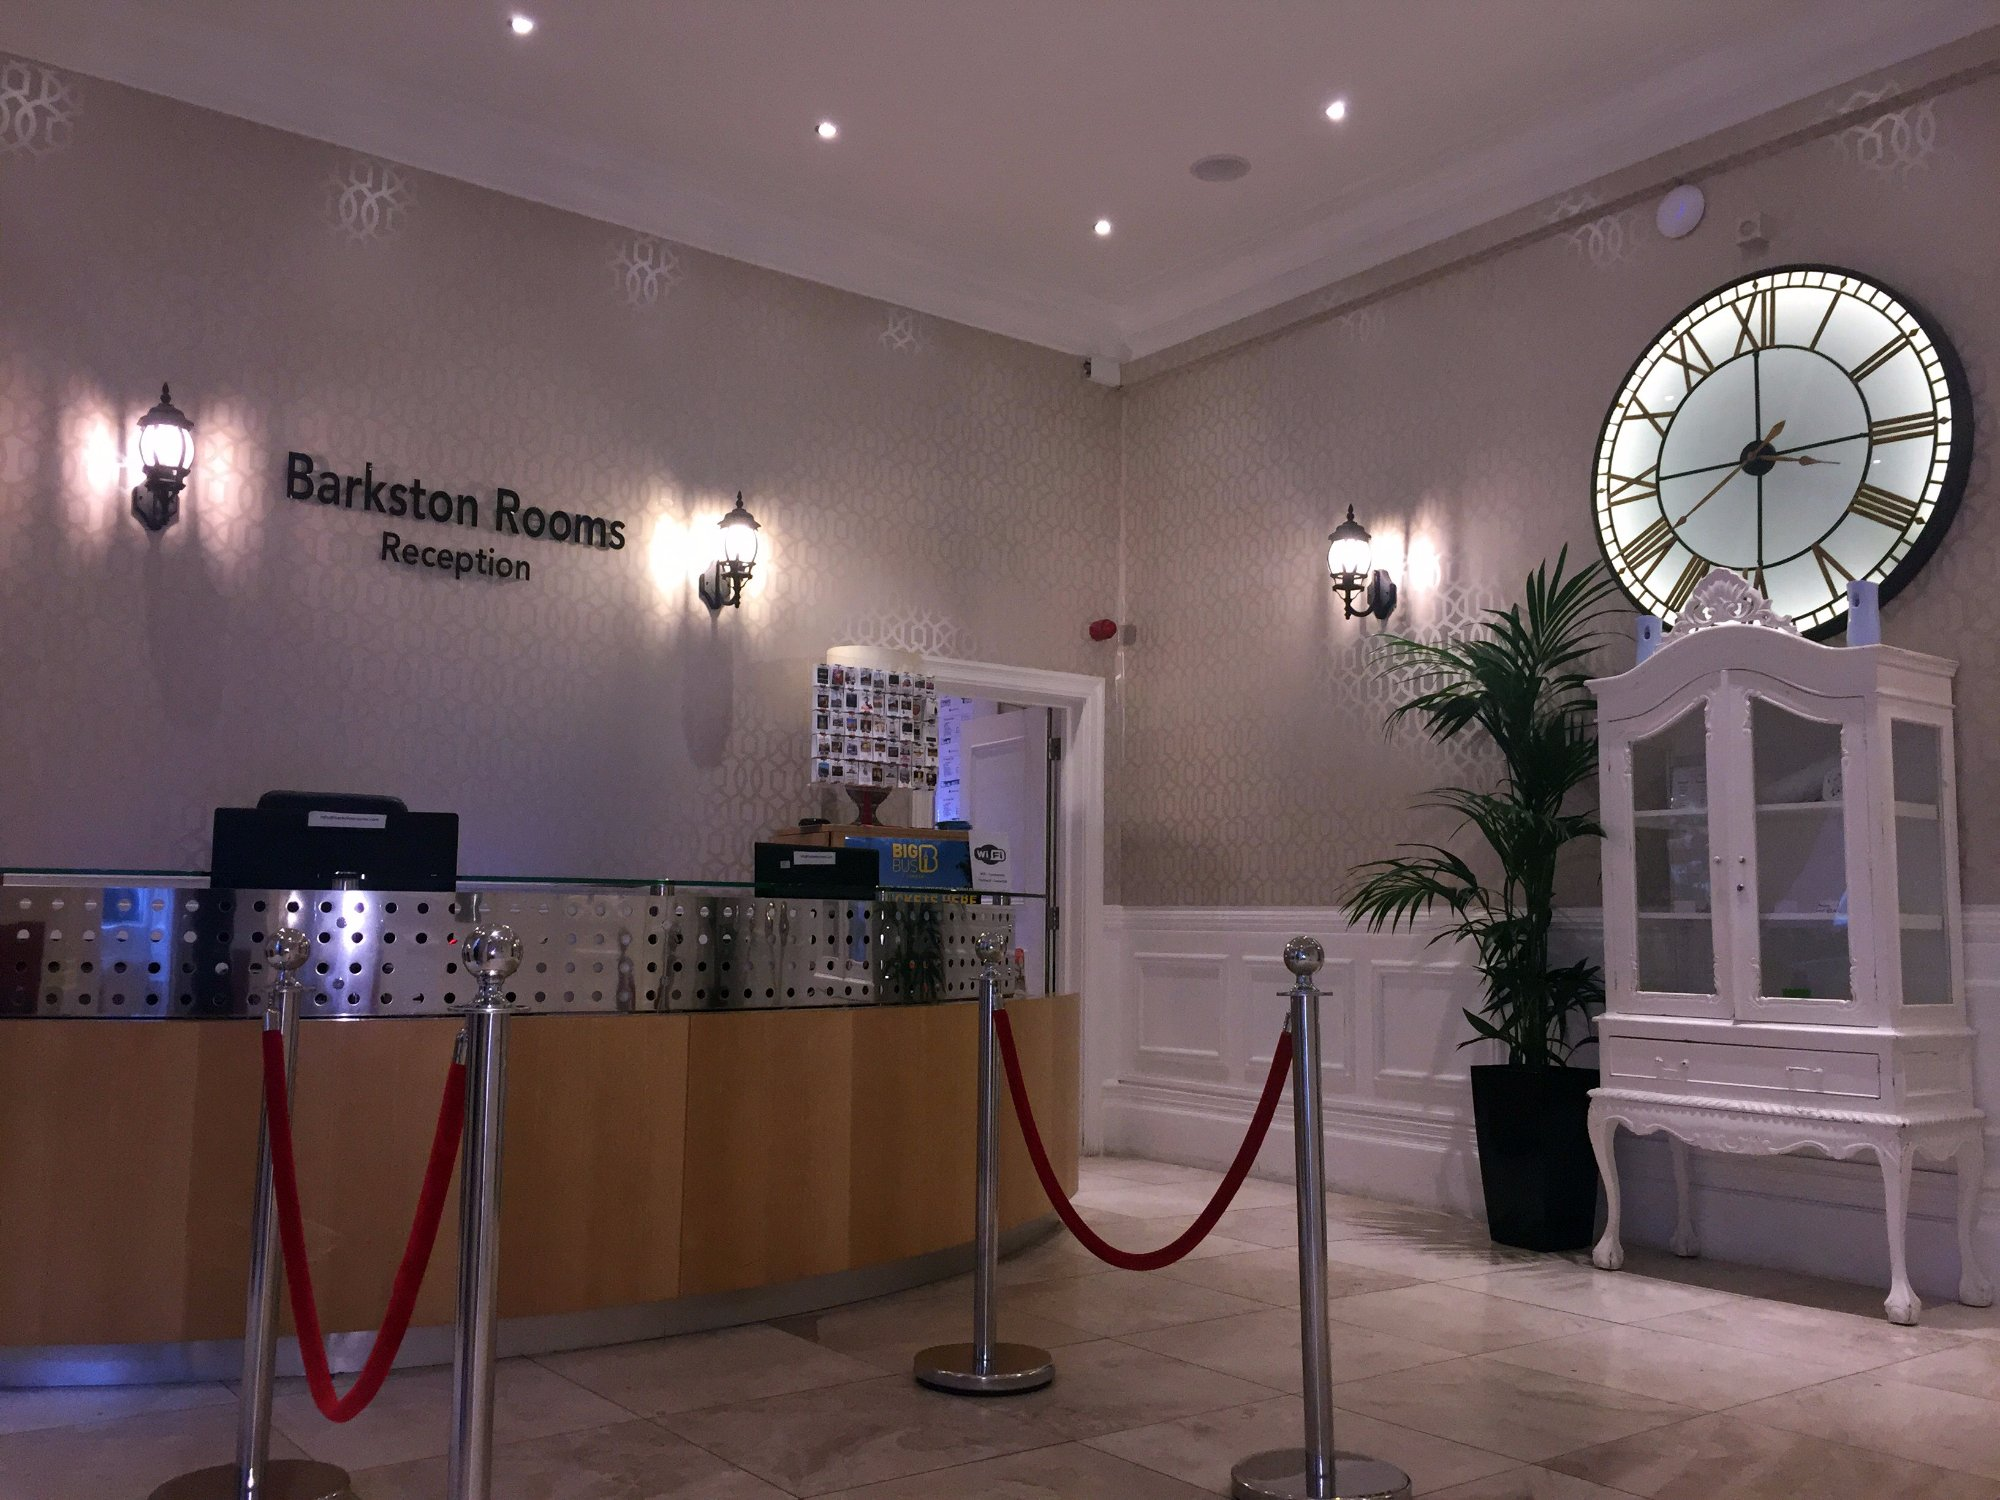 Barkston Rooms